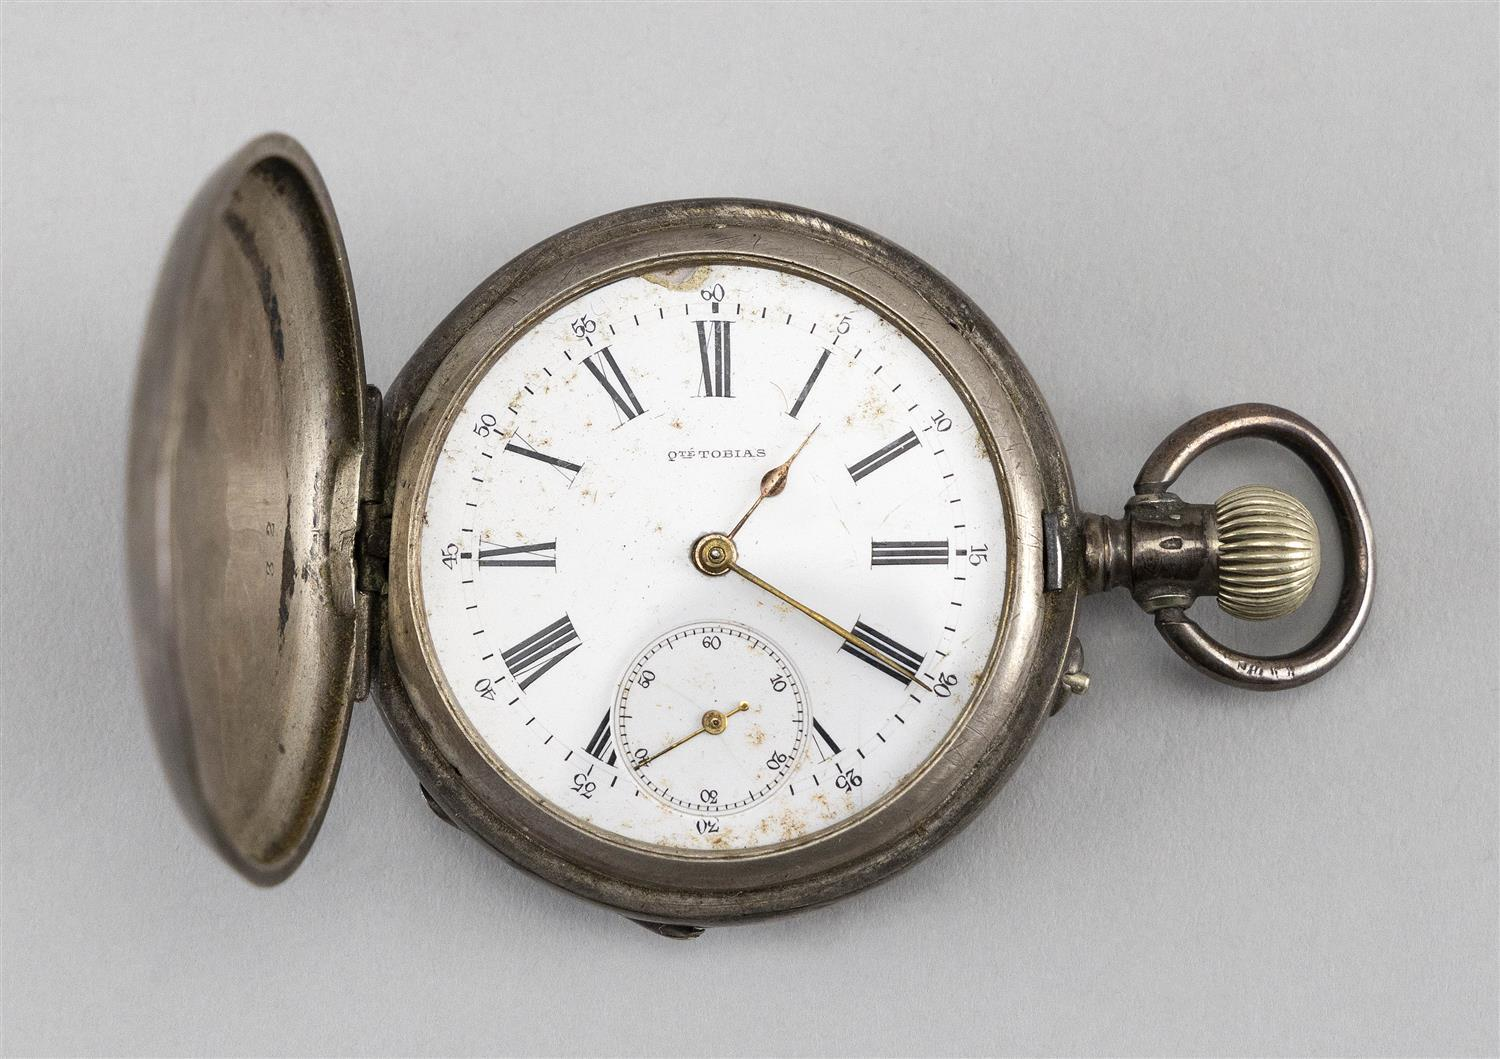 TOBIAS .875 SILVER HUNTER POCKET WATCH Case numbered 107832 and with Swiss guarantee marks. Roman numeral dial with auxiliary second...